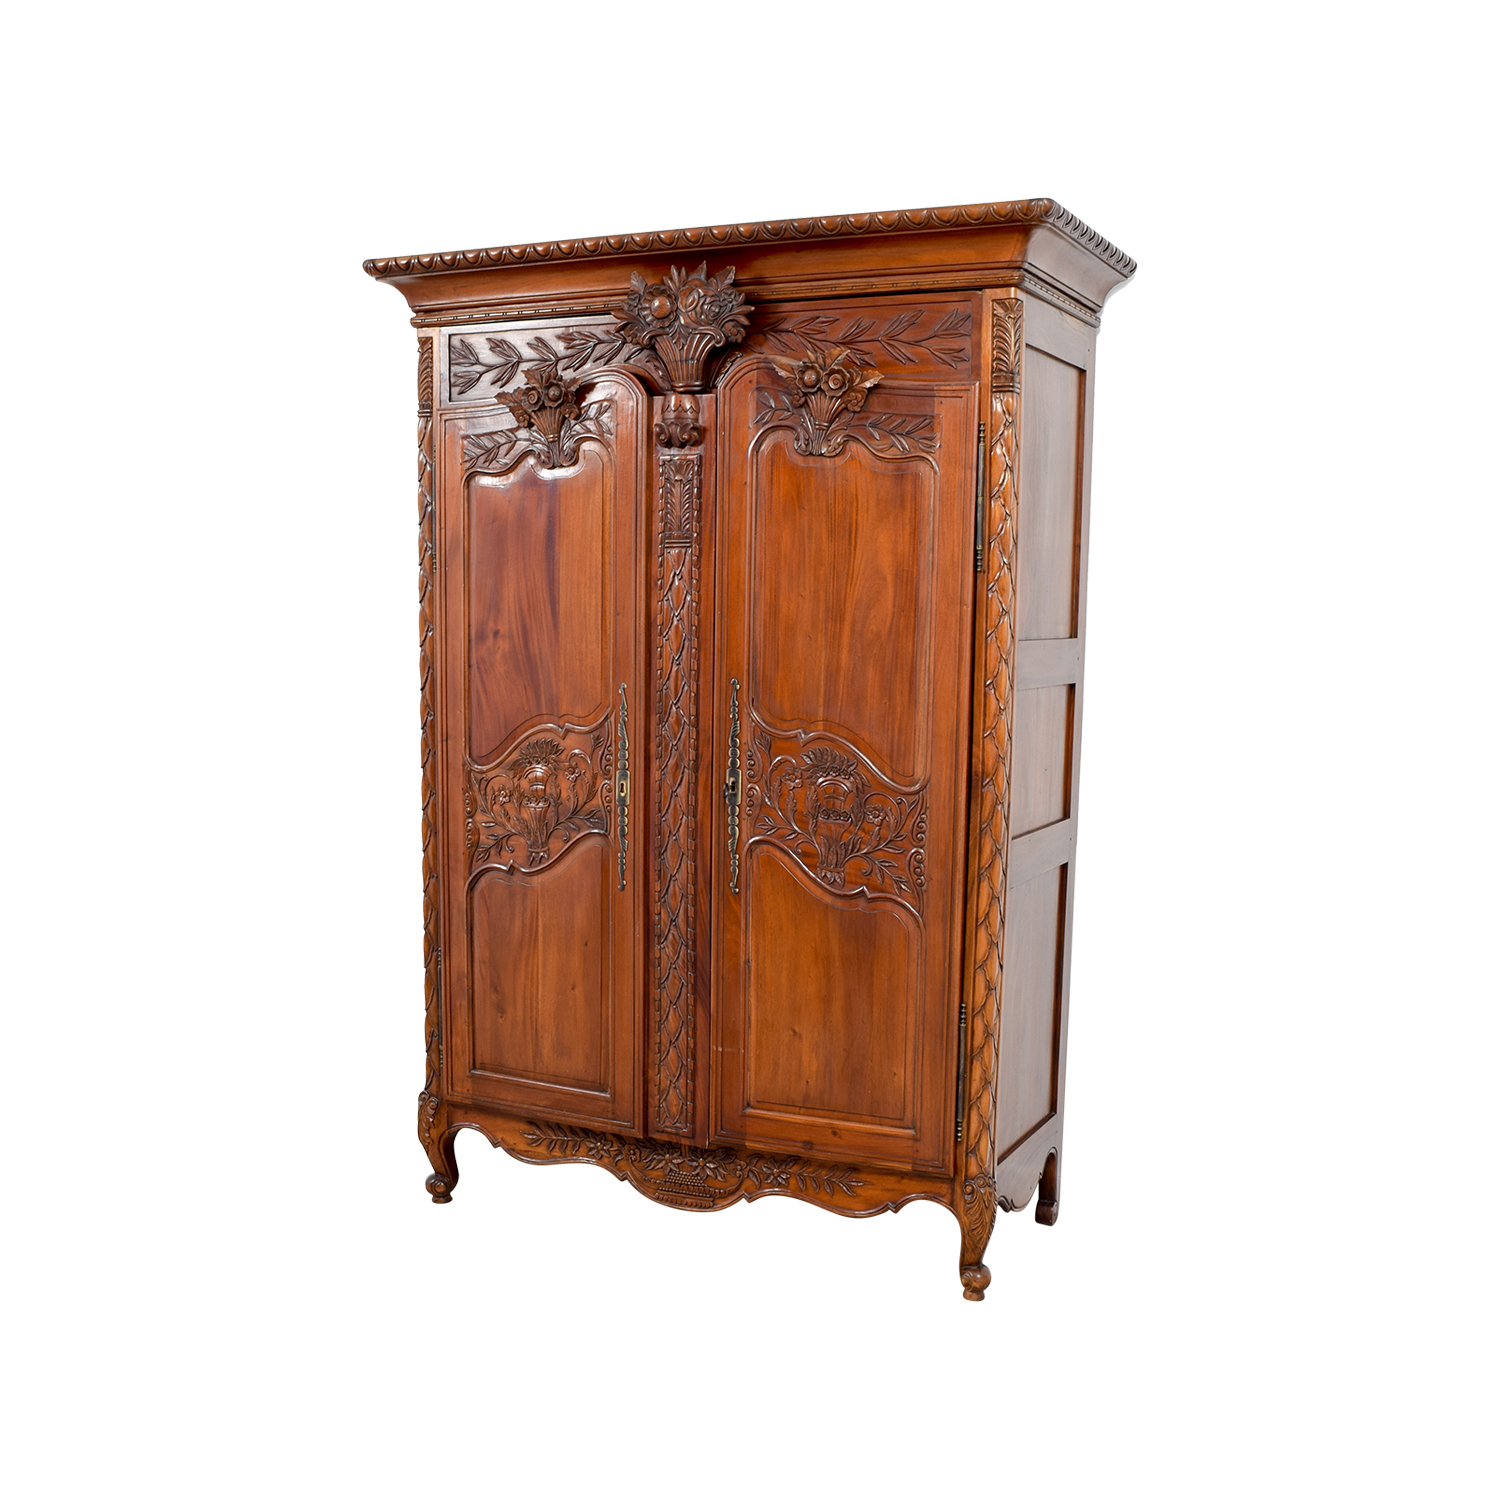 wooden hand chair bali lucite folding chairs 74 off carved wood armoire storage